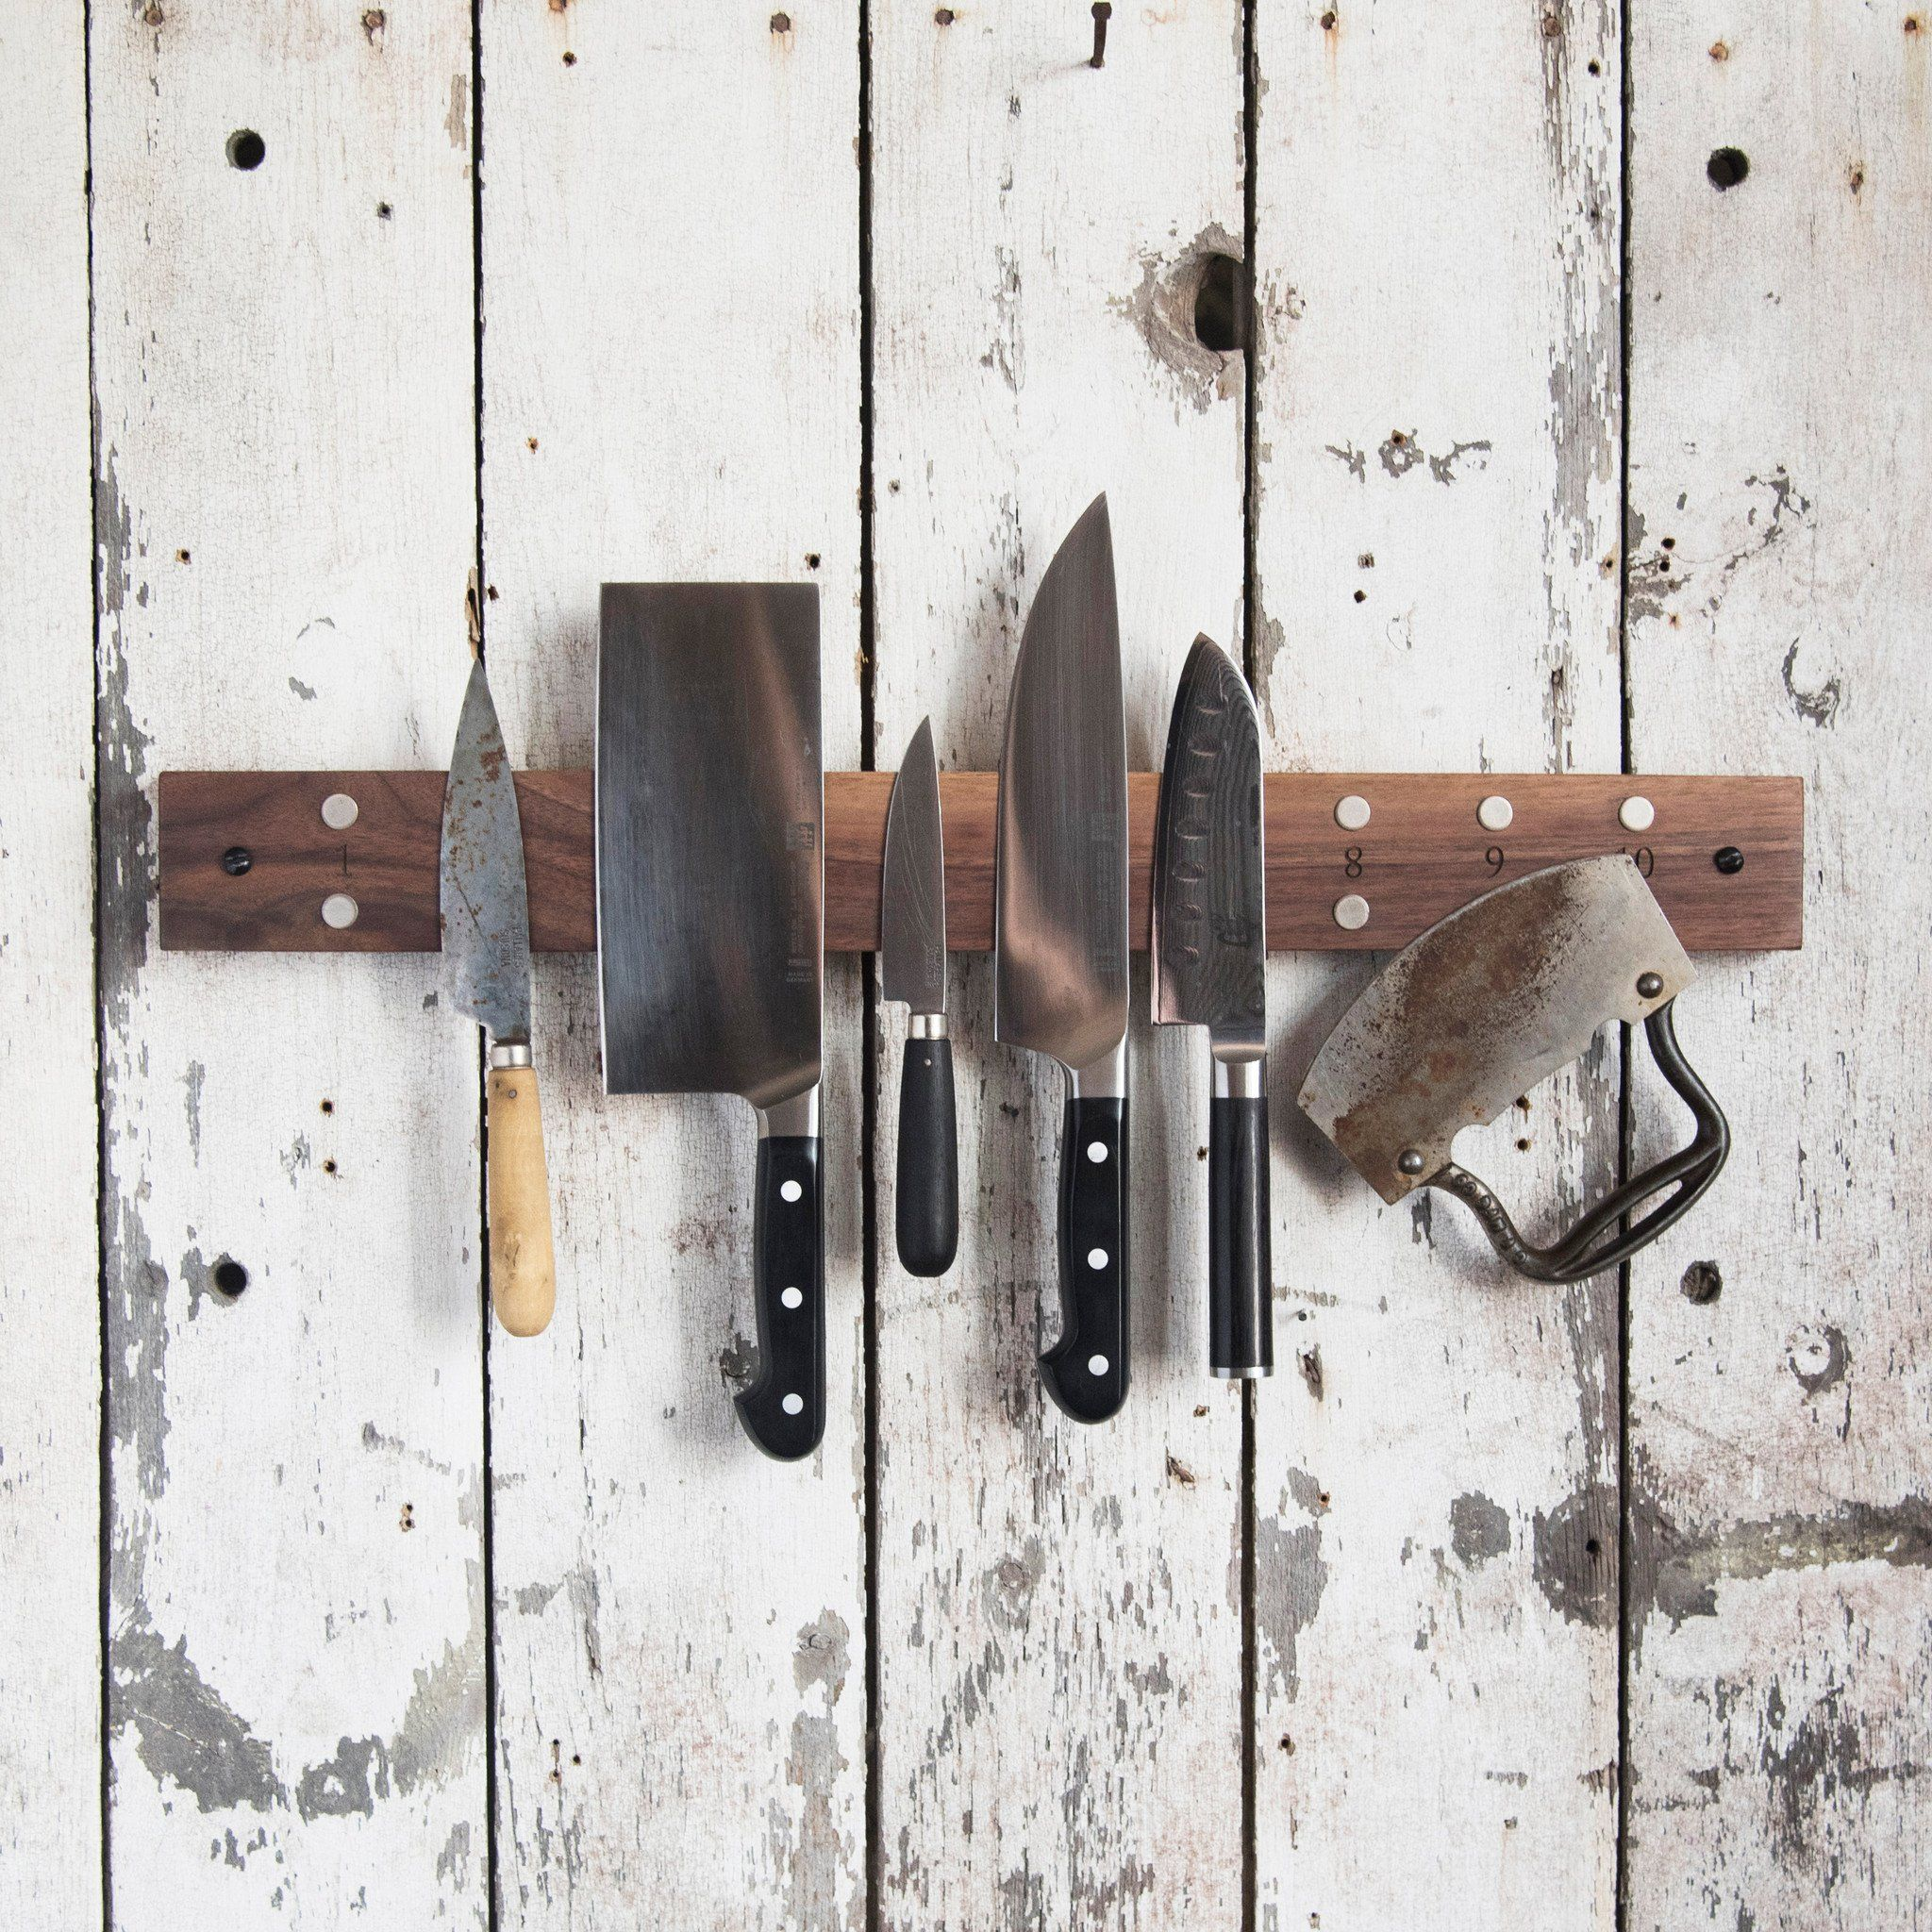 The Peg and Awl Knife Holder is a universal kitchen knife storage solution that will replace clunky knife blocks. Handmade from eco-friendly reclaimed wood.